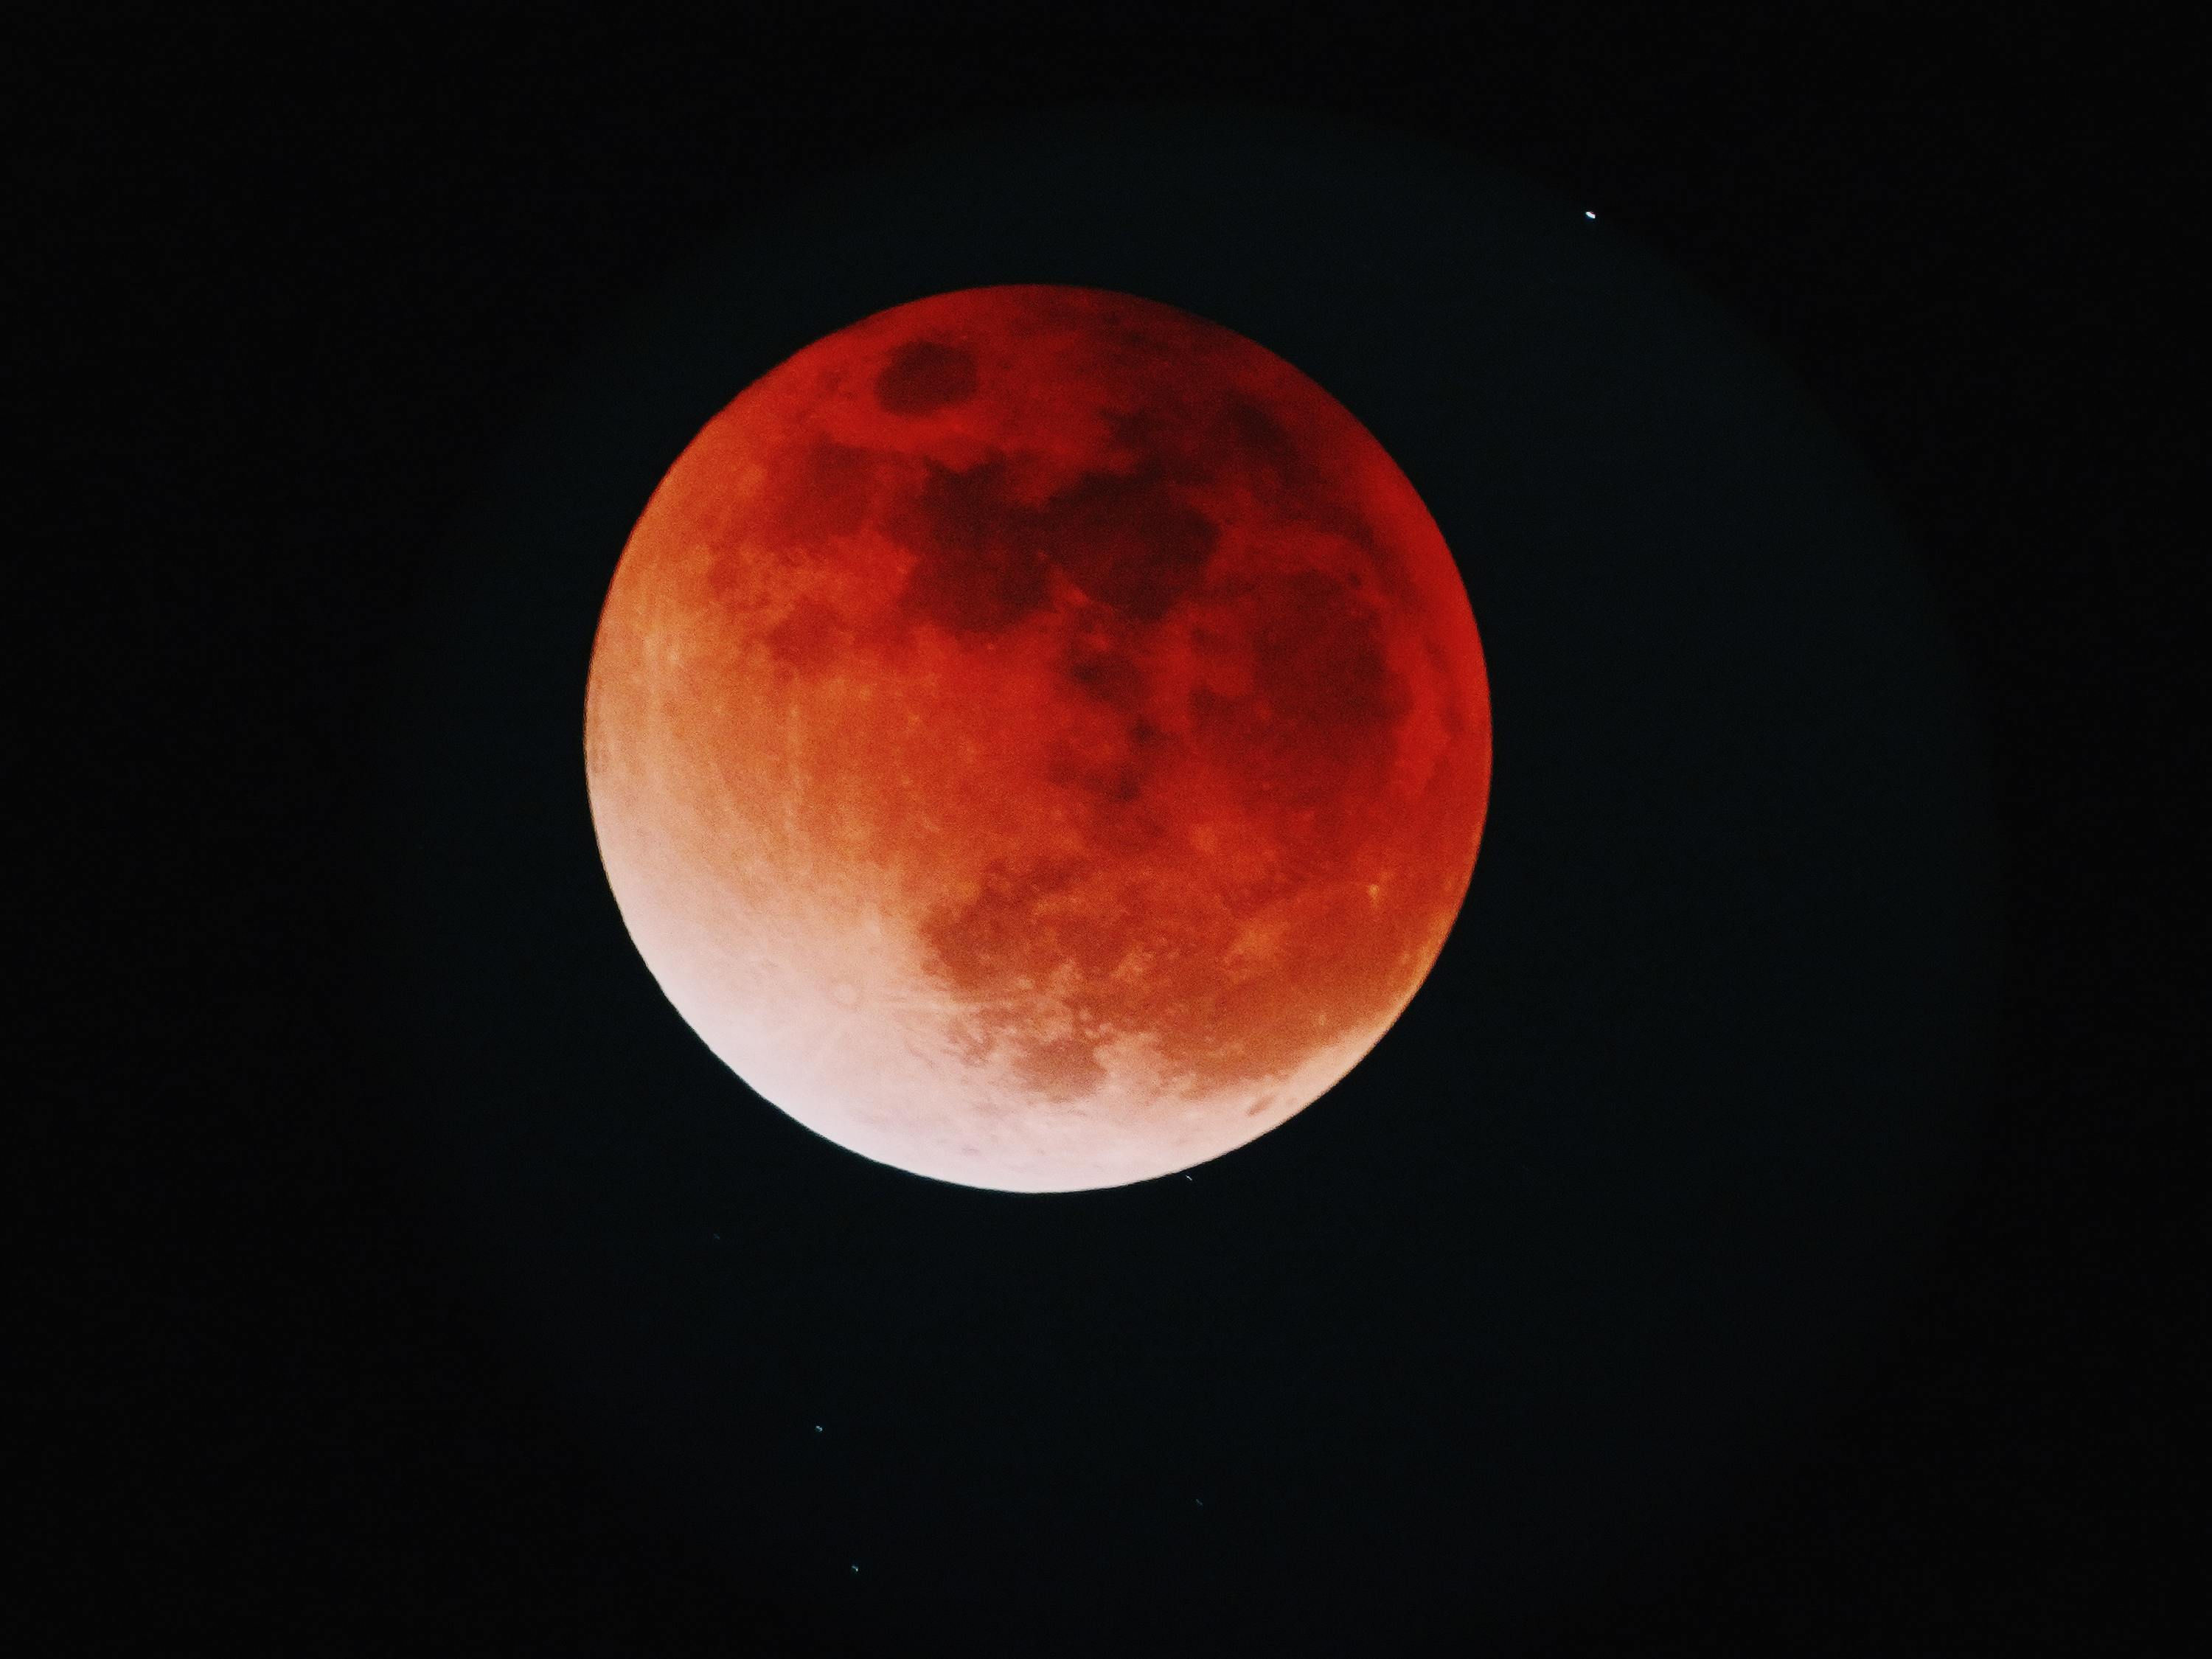 A total lunar eclipse is happening over Melbourne this May